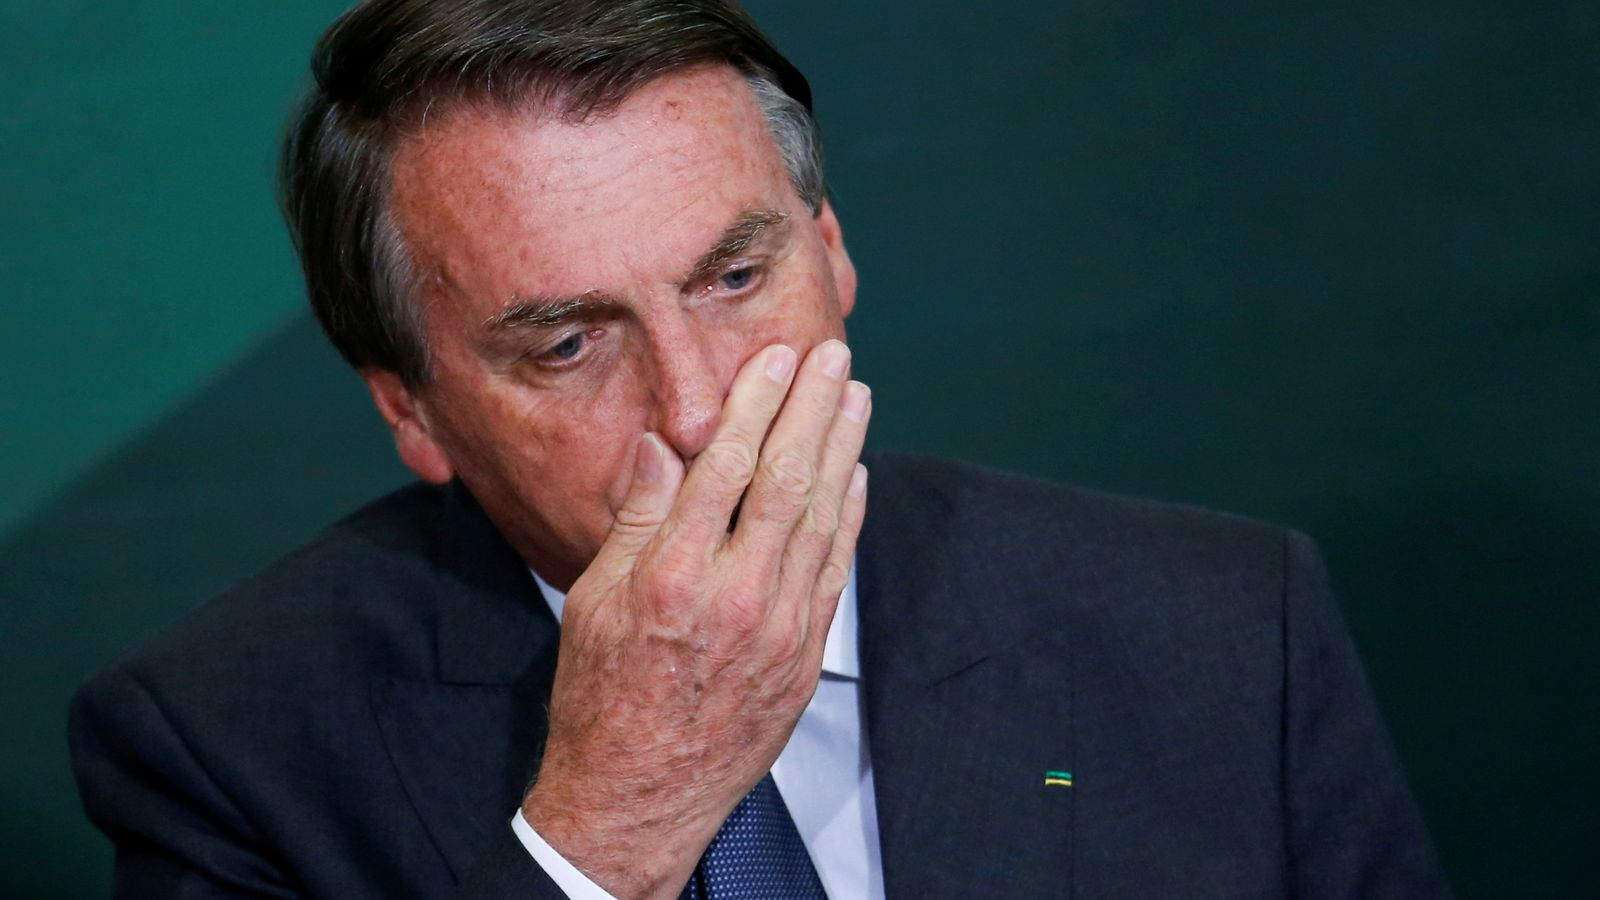 Brazil senators recommend president face crimes against humanity charges over COVID policies